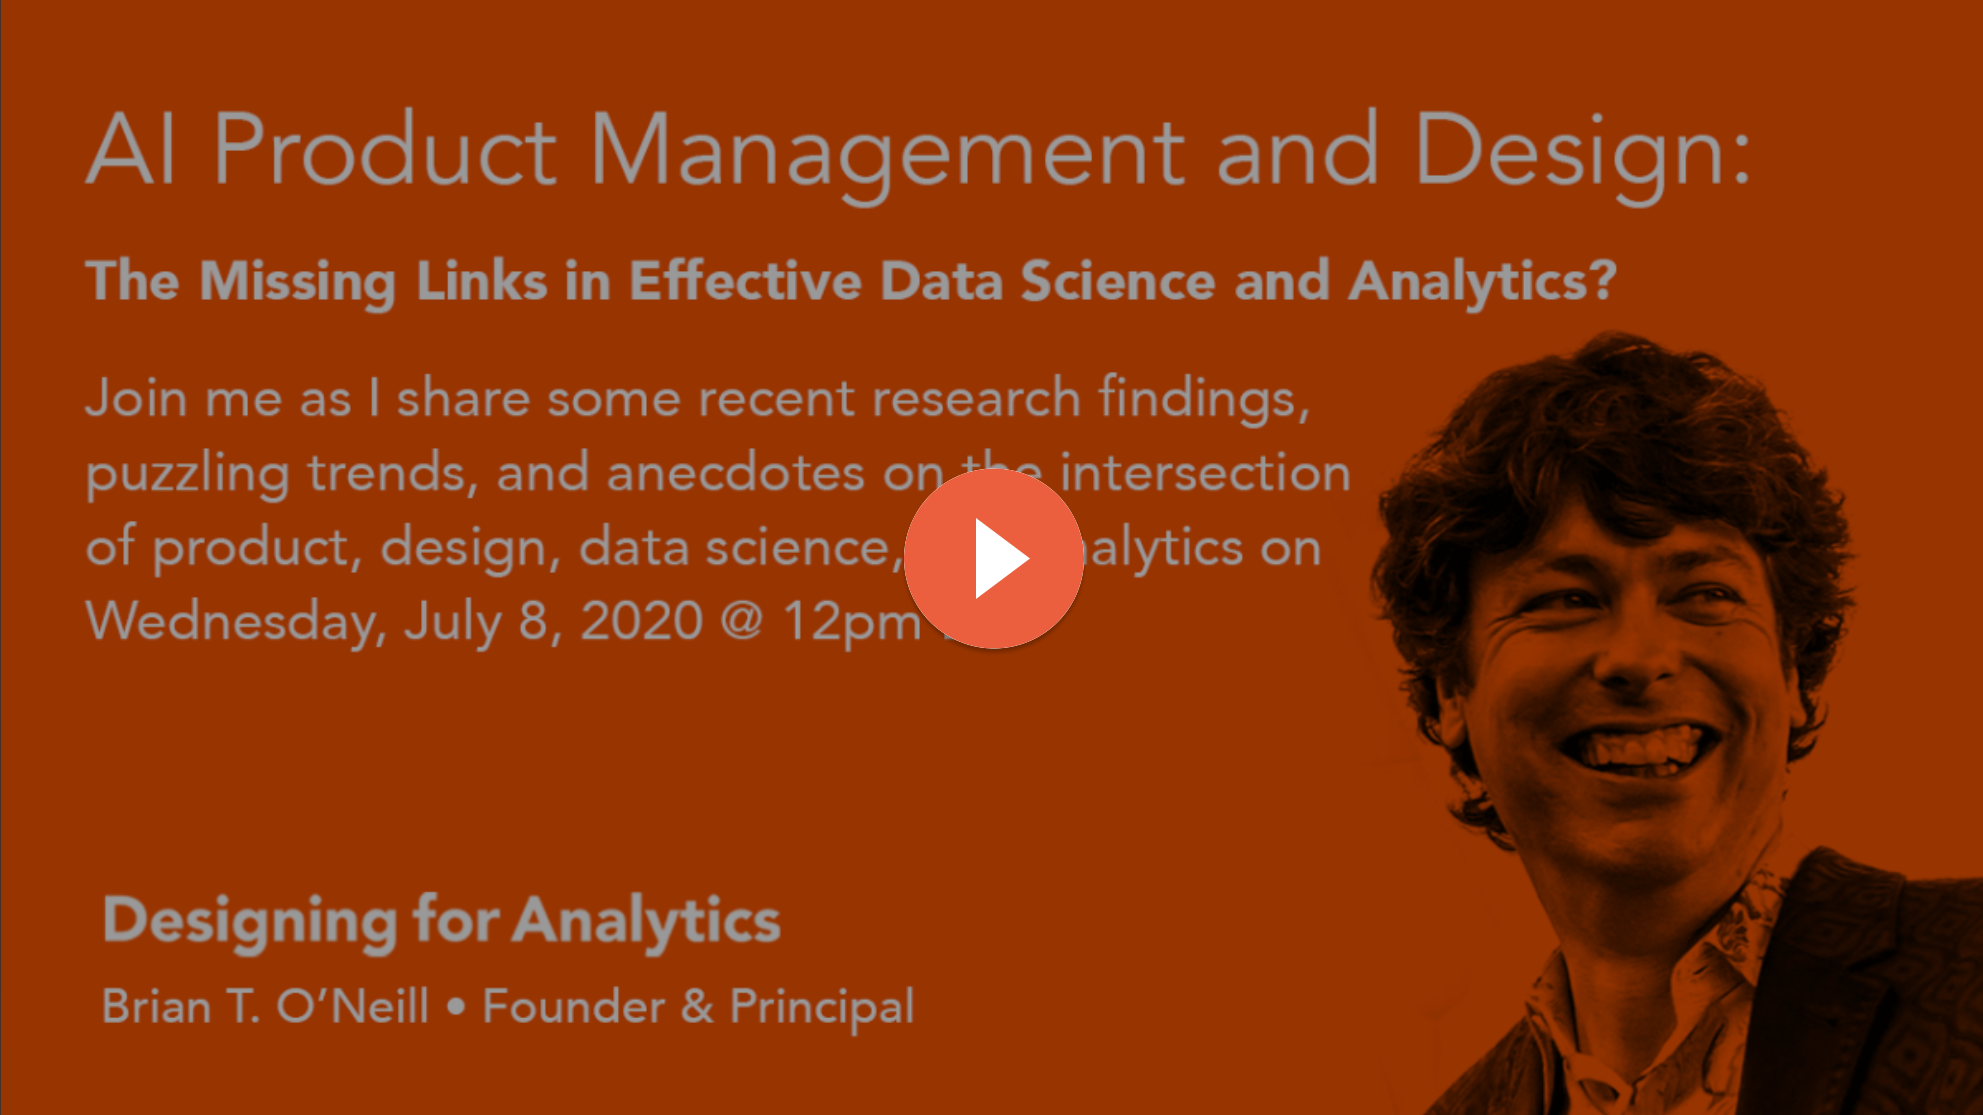 AI Product Management and Design: The Missing Links in Effective Data Science and Analytics?